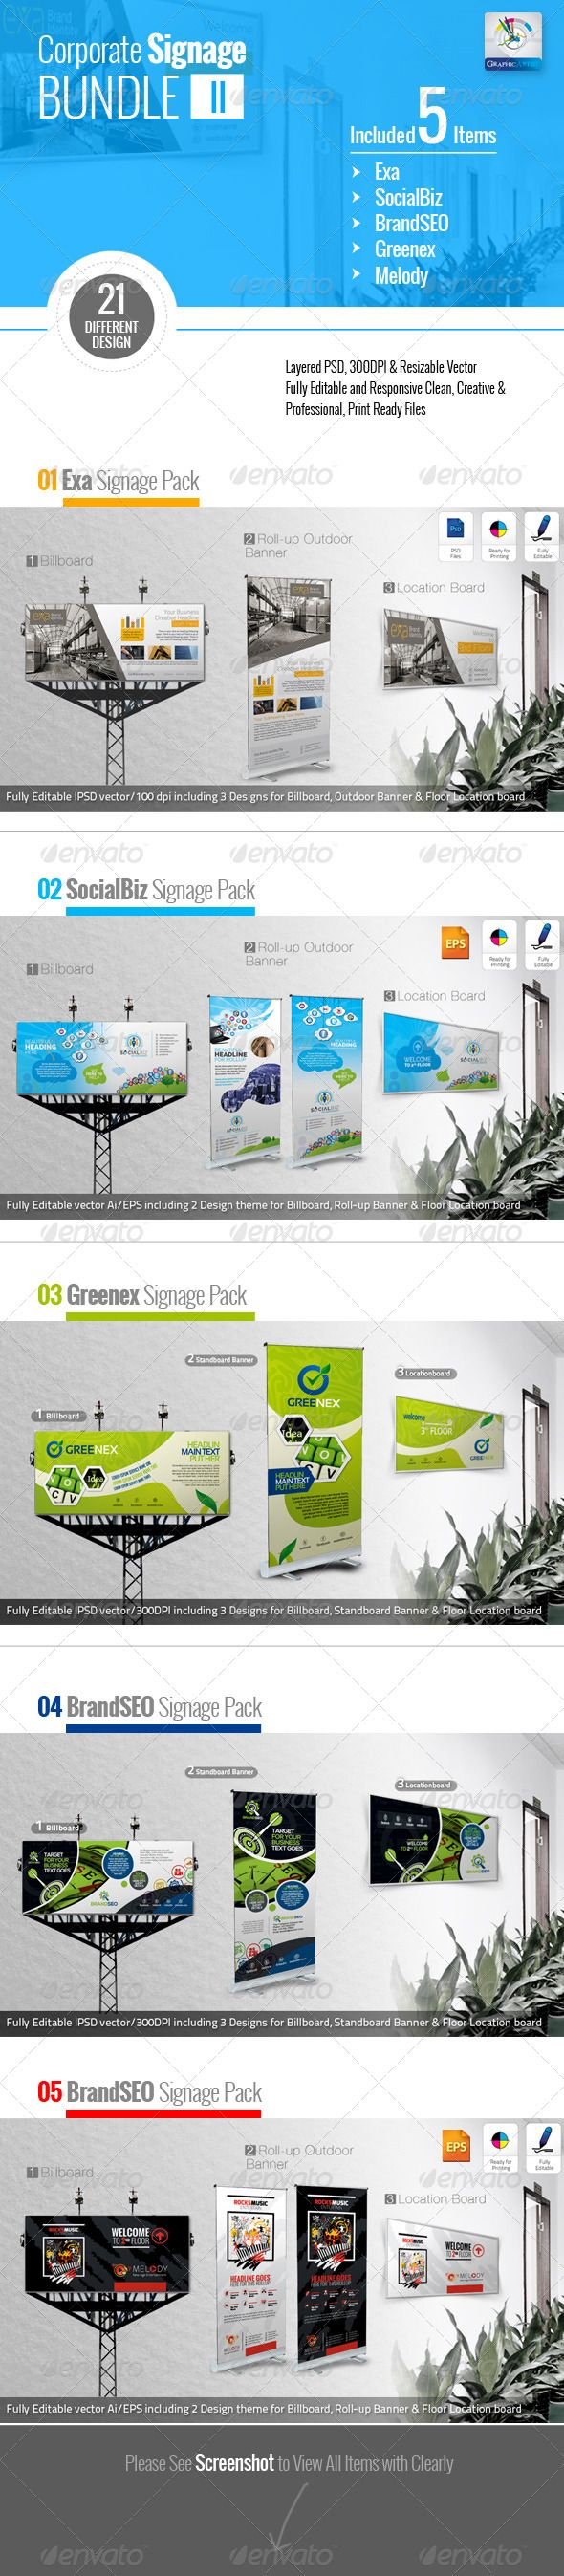 "Corporate Signage Bundle II #GraphicRiver 01_ Exa Clean Signage Pack Corporate Business Signage Pack- Exa including Billboard, Roll-up Outdoor Banner & Location Board Signage Templates Billboard: 120×48"" print dimension >Roll-up Outdoor Banner: 30×70"" print dimension Location Board: 30×18"" Print Dimension Bleed + Trim Mark, Well Layered Organised (PSD), CMYK, Print ready Fully Editable, Text/fonts/colours editable Very Easy to Customise & replace the picture image Whats you get in the main files"